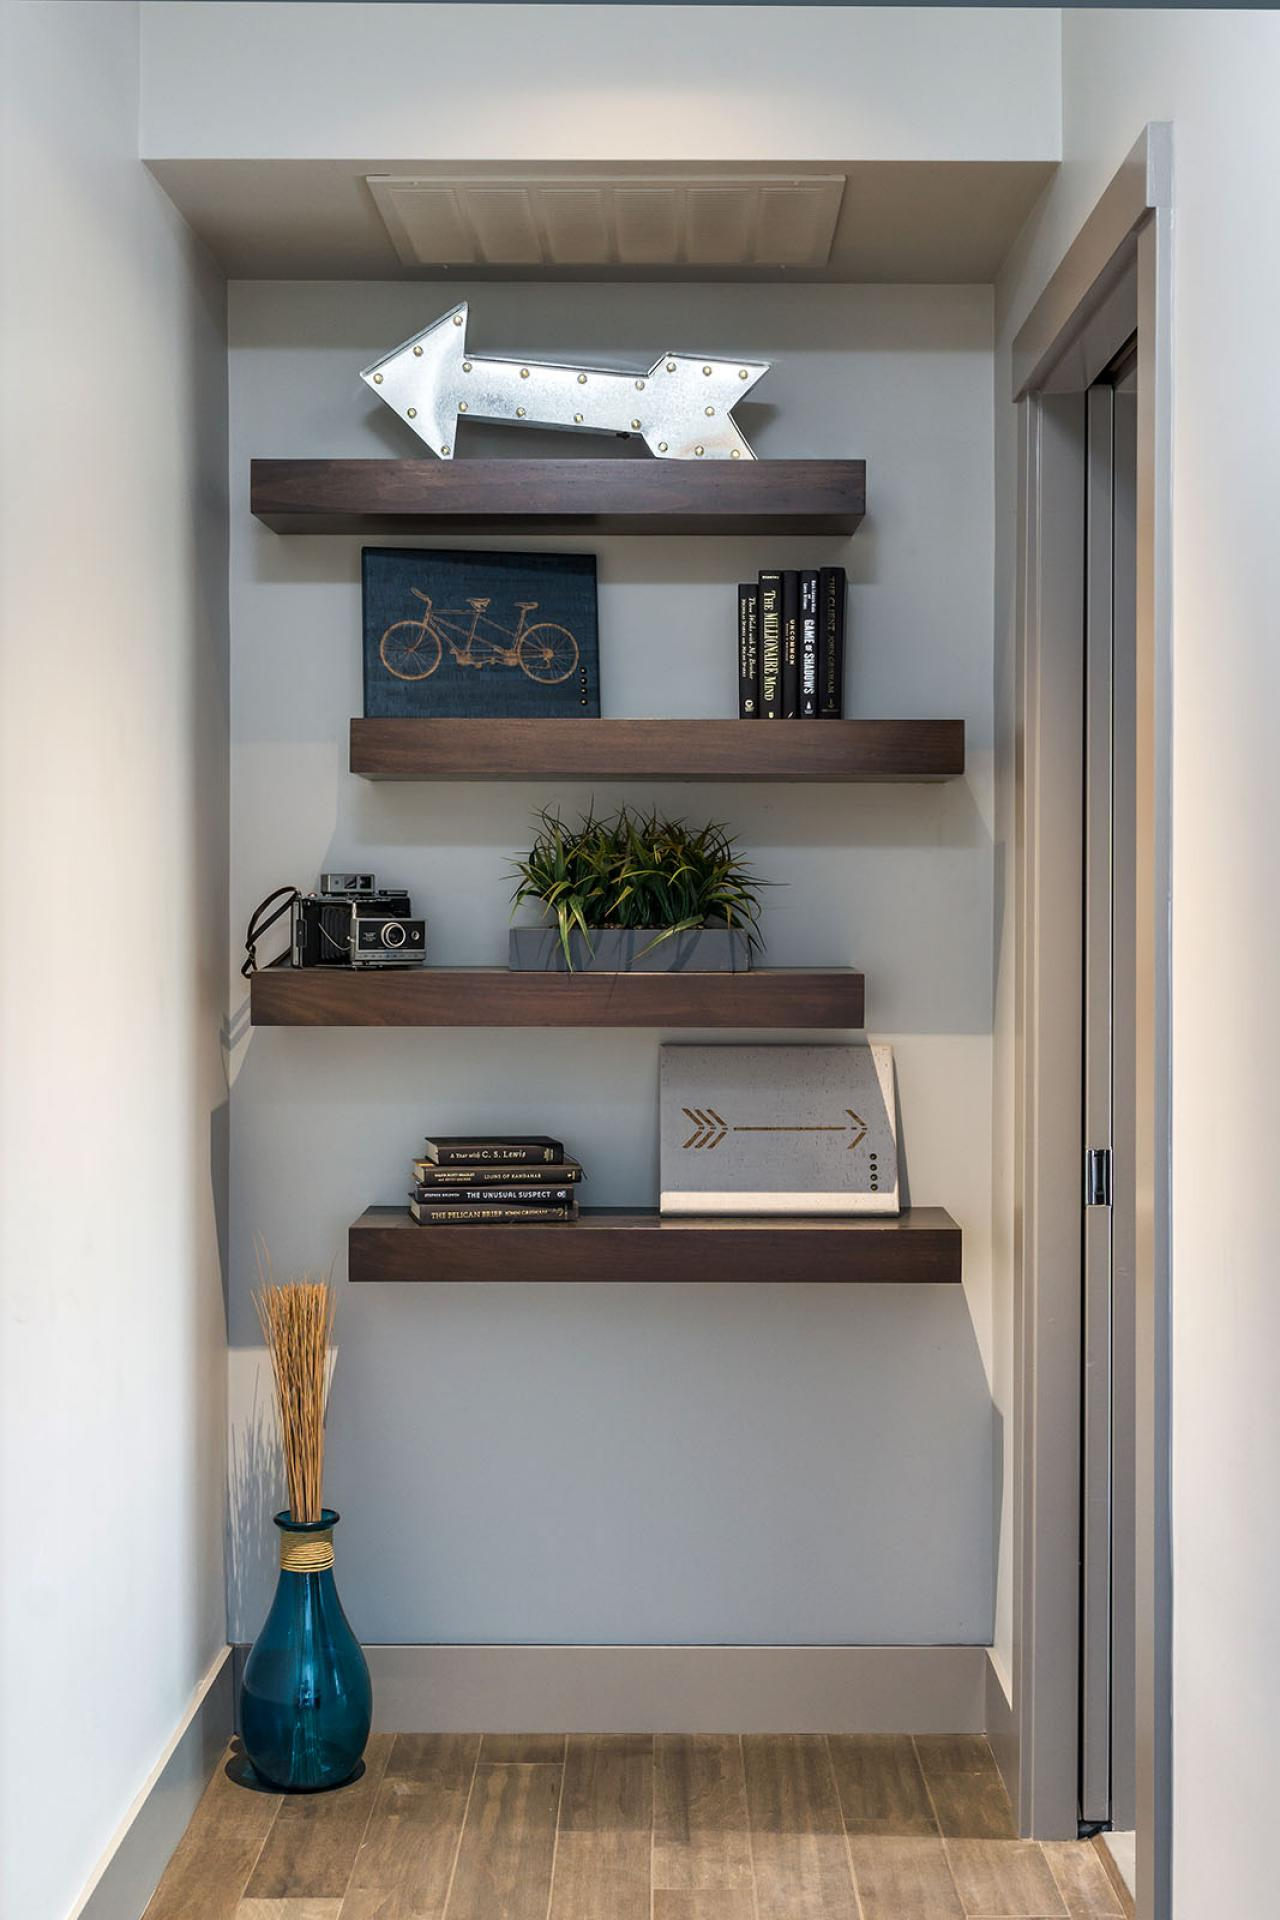 ways decorate with floating shelves decorating design for living room decorative contemporary hallway command adhesive tape accordion coat hanger open kitchen tures antique pine